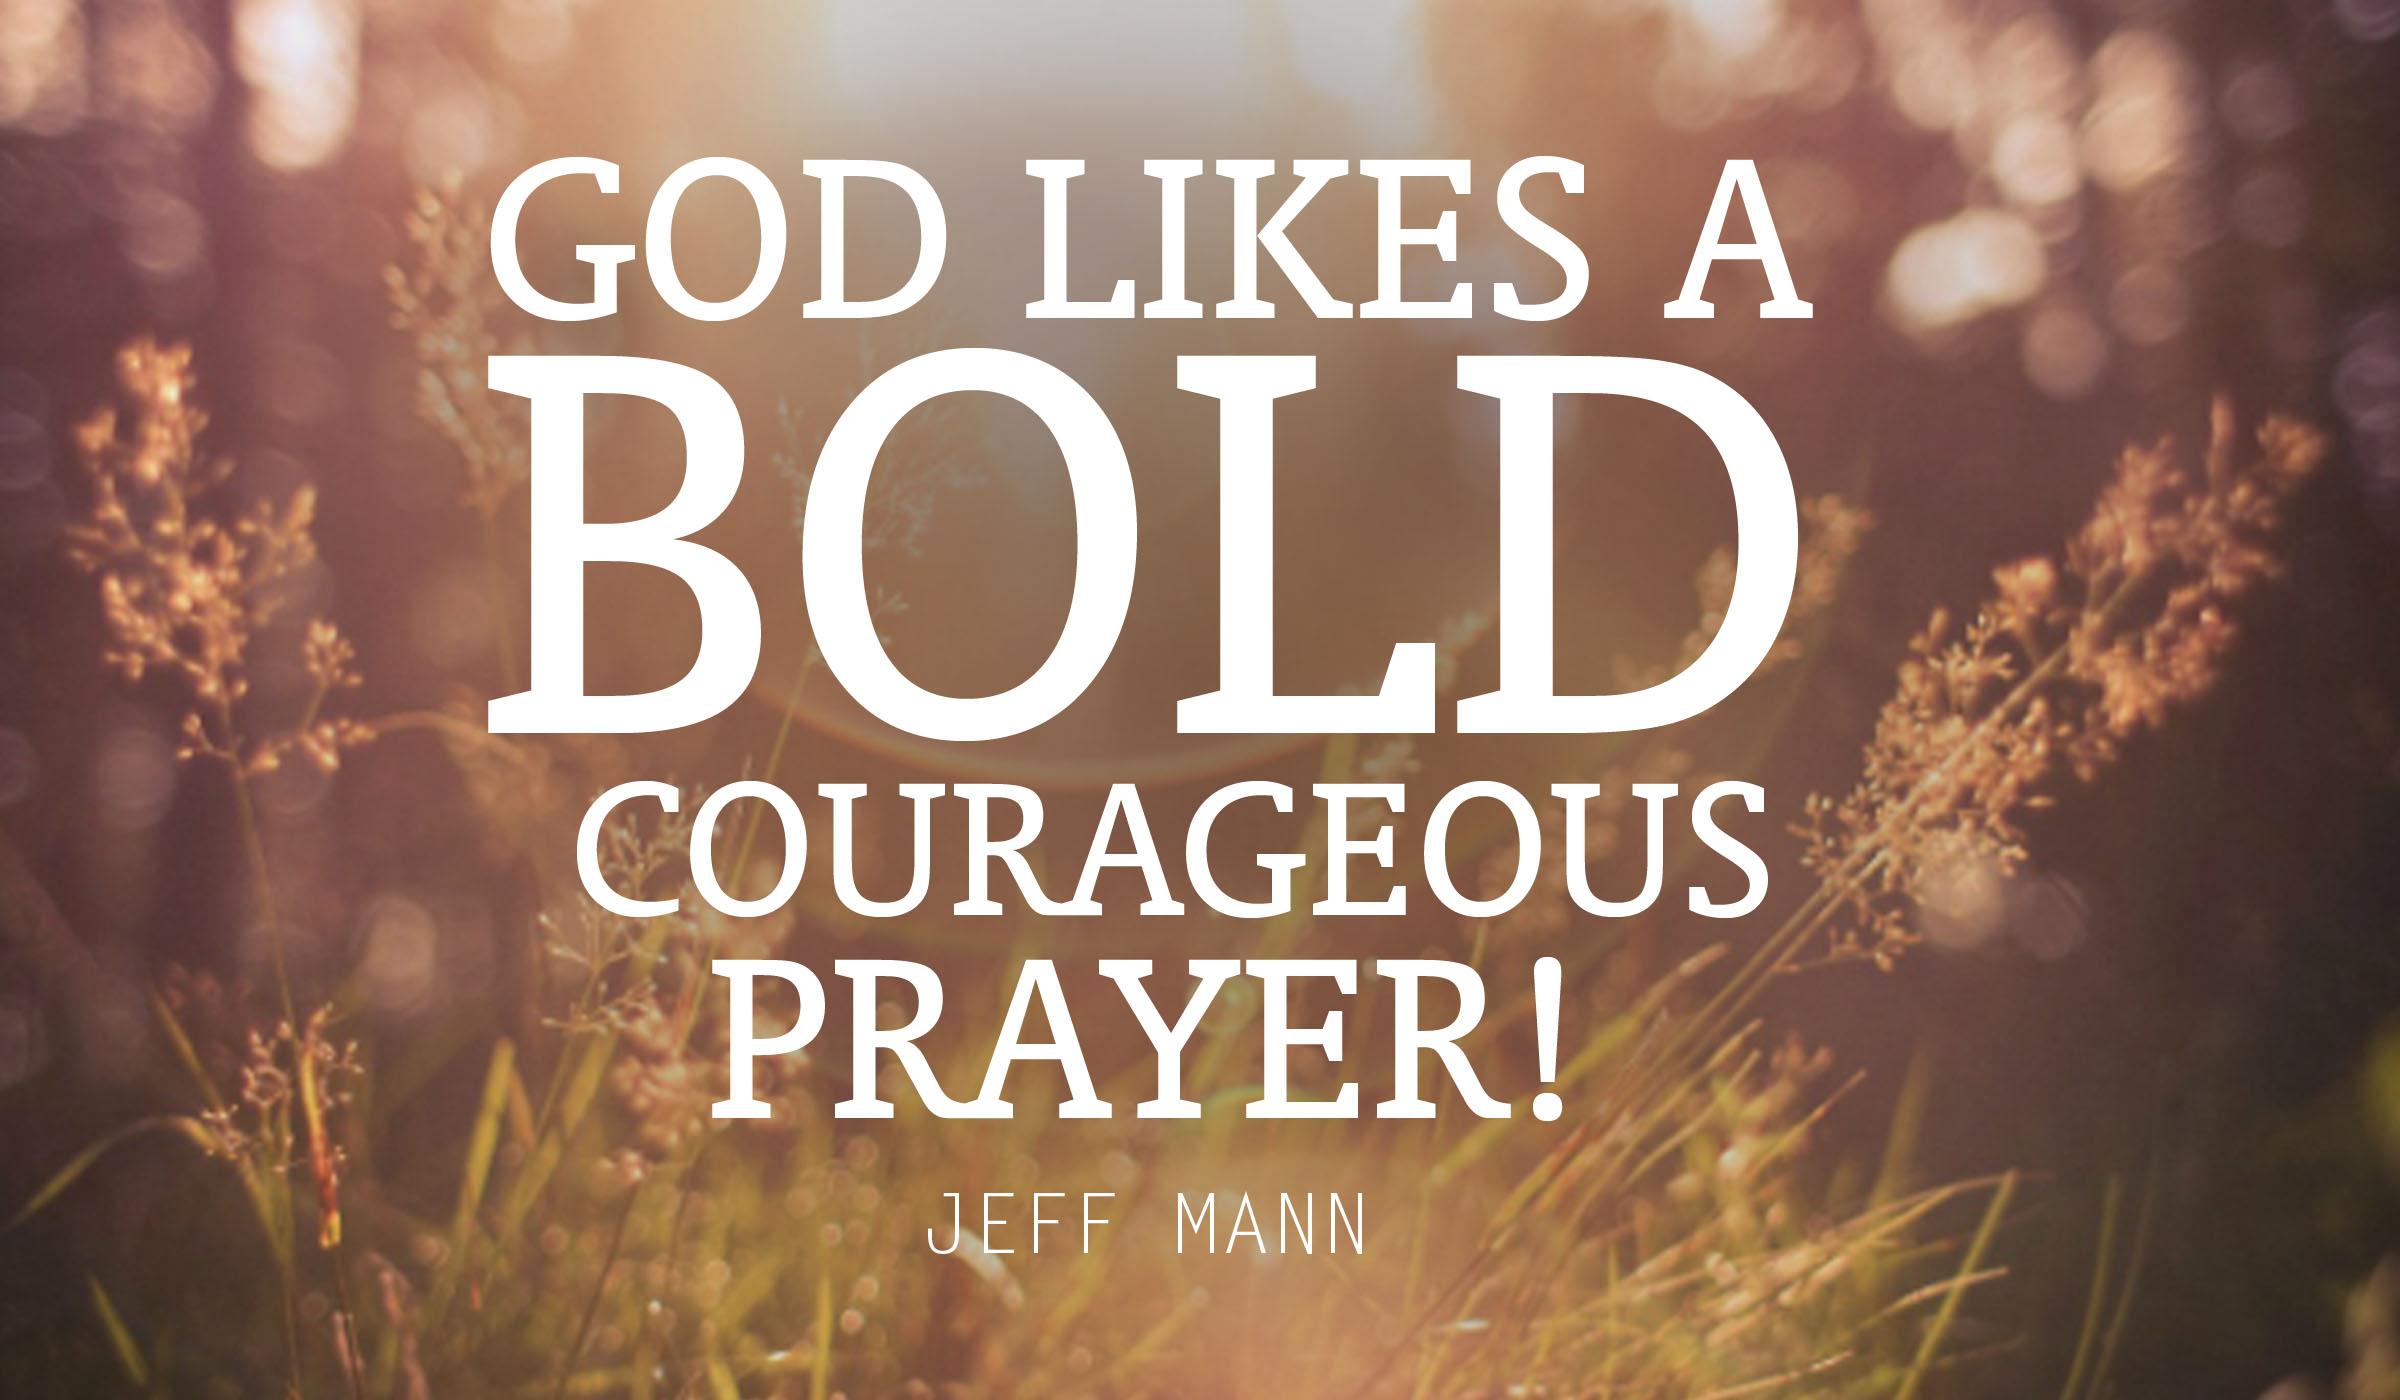 God likes Bold, Courageous Prayer!